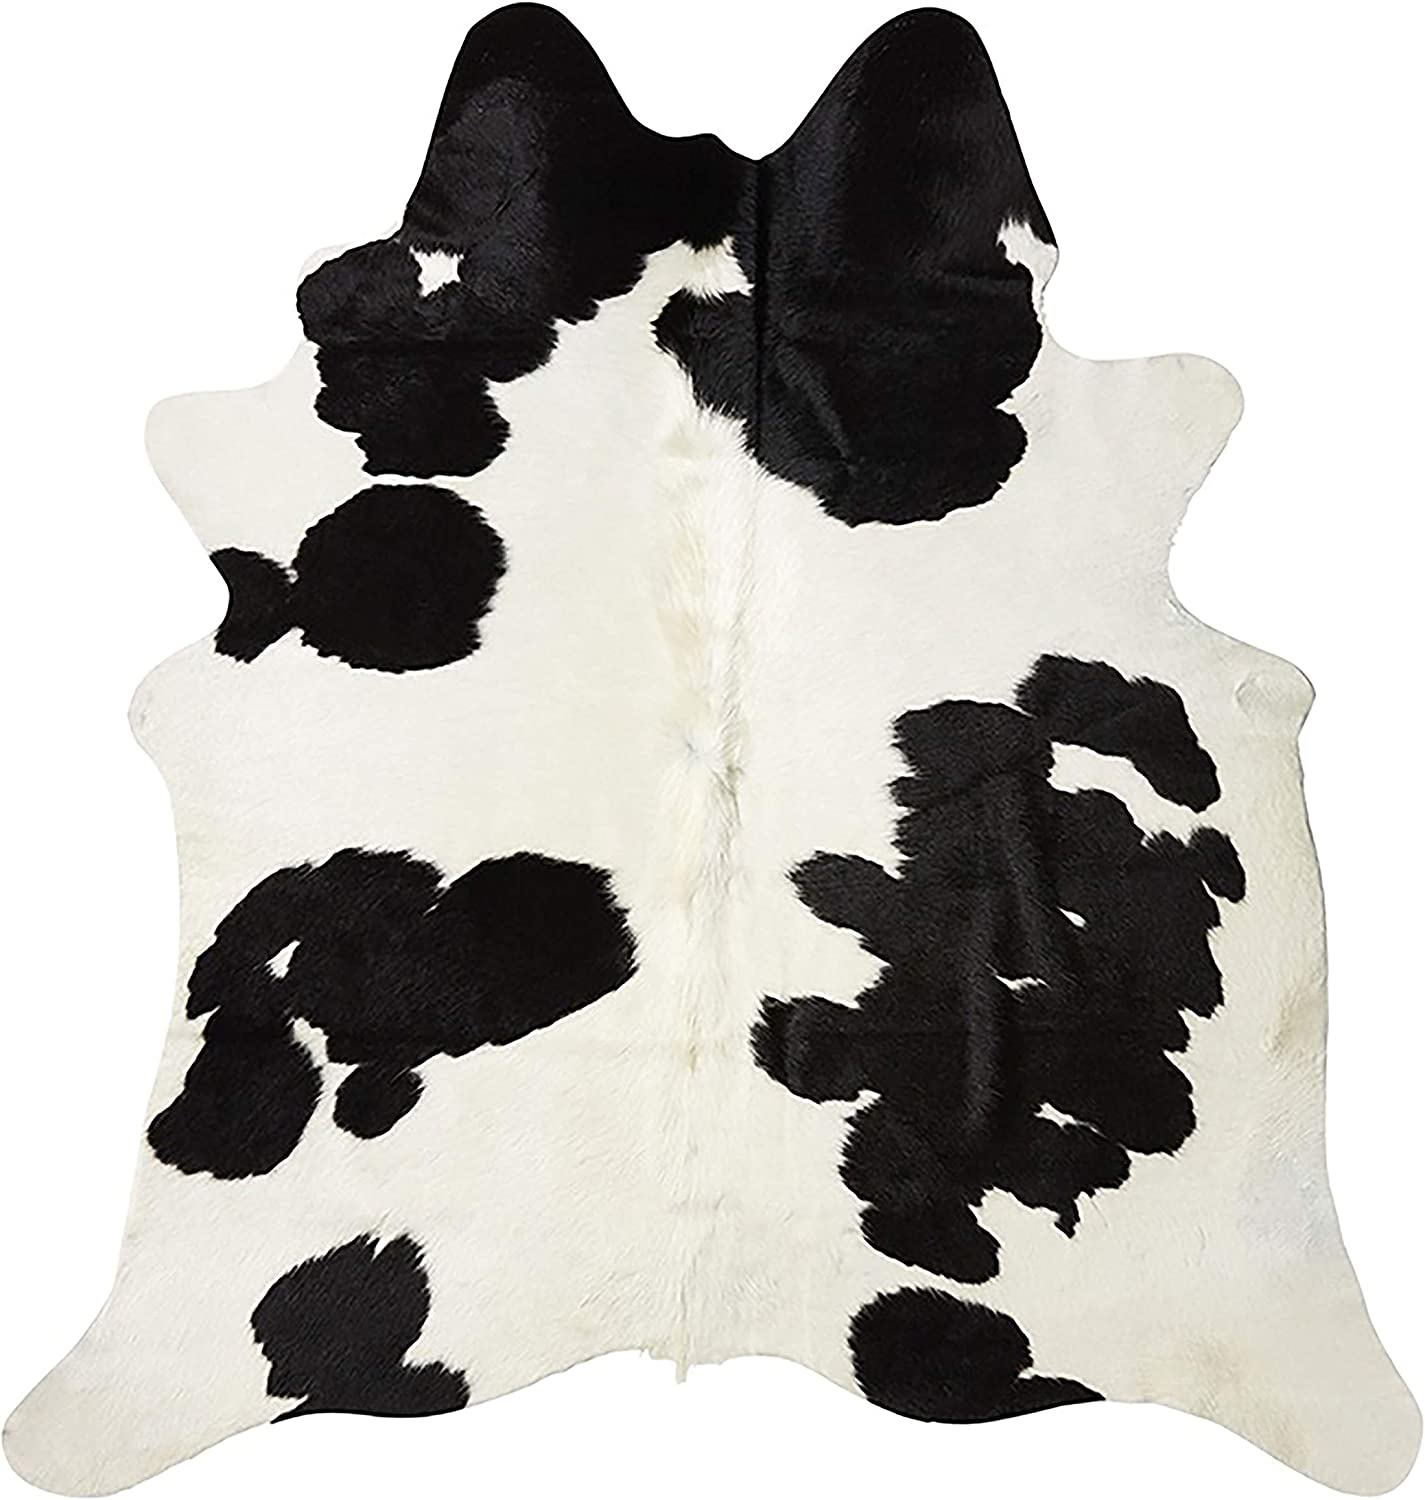 Real Cowhide Black White Patterns Assortment Pieces 8 cms x 15 cms Pack of 12